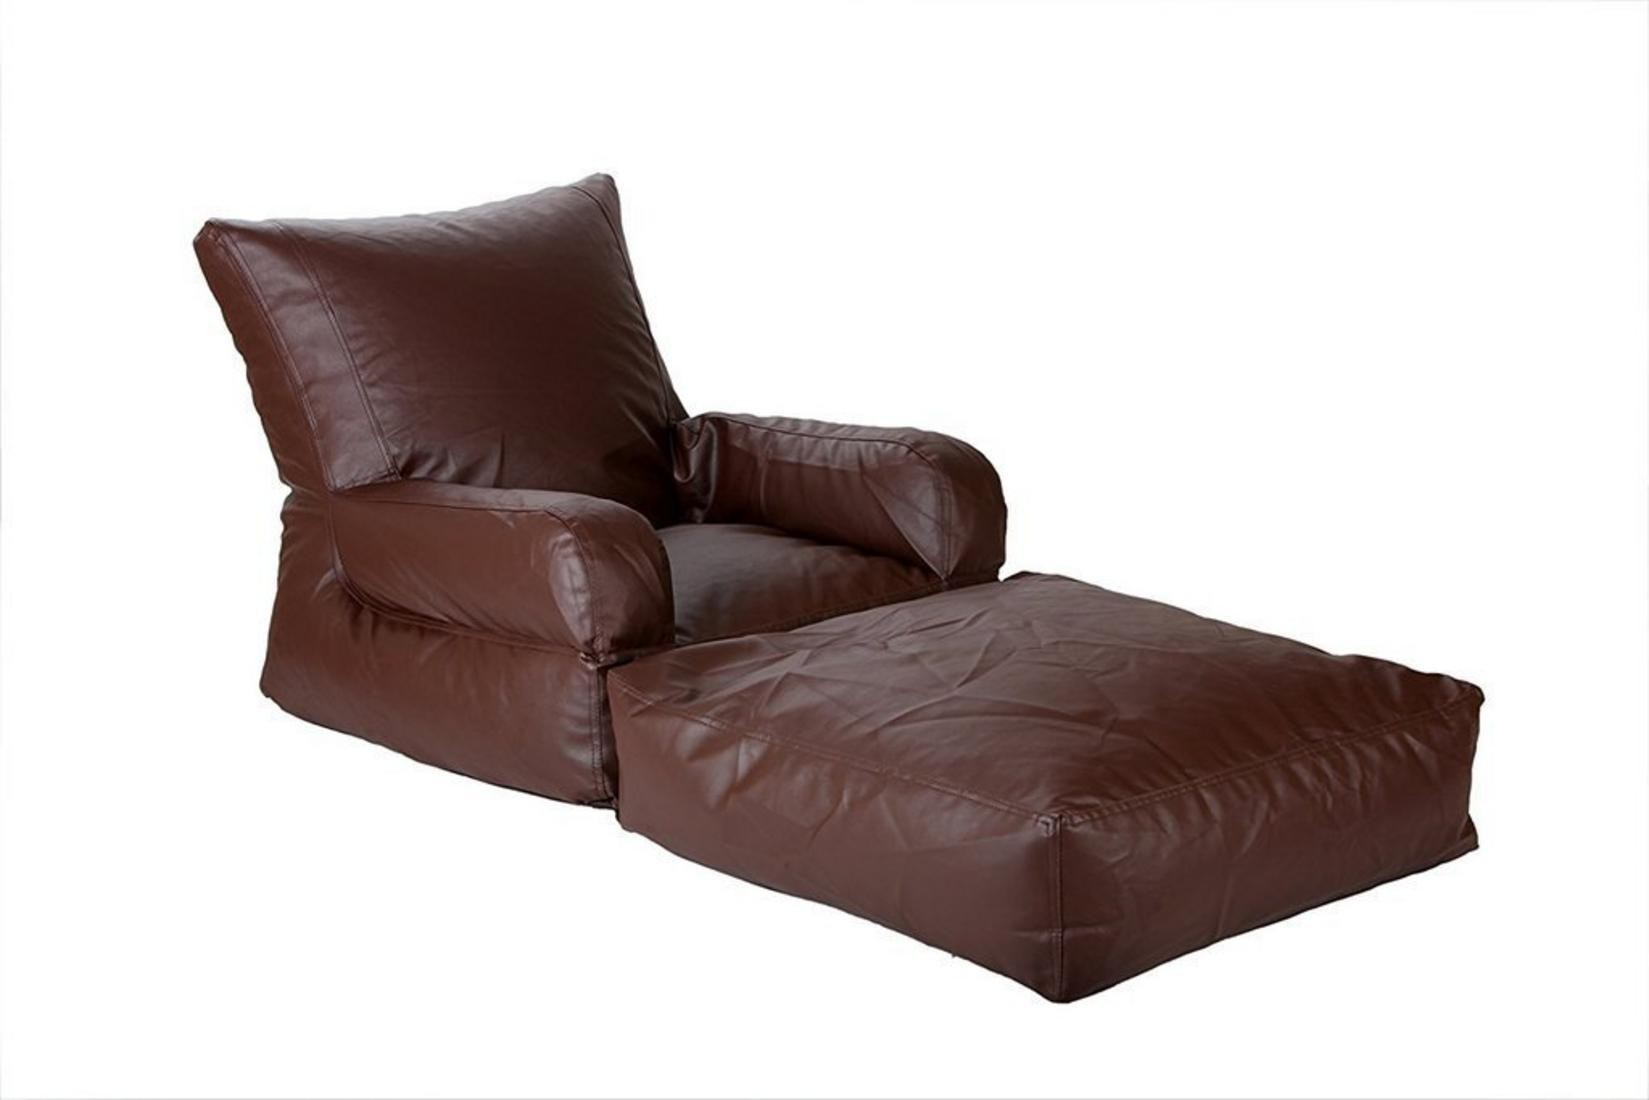 View Ink Craft Large Lounger Bean Bag Cover(Brown) Furniture (InkCraft)